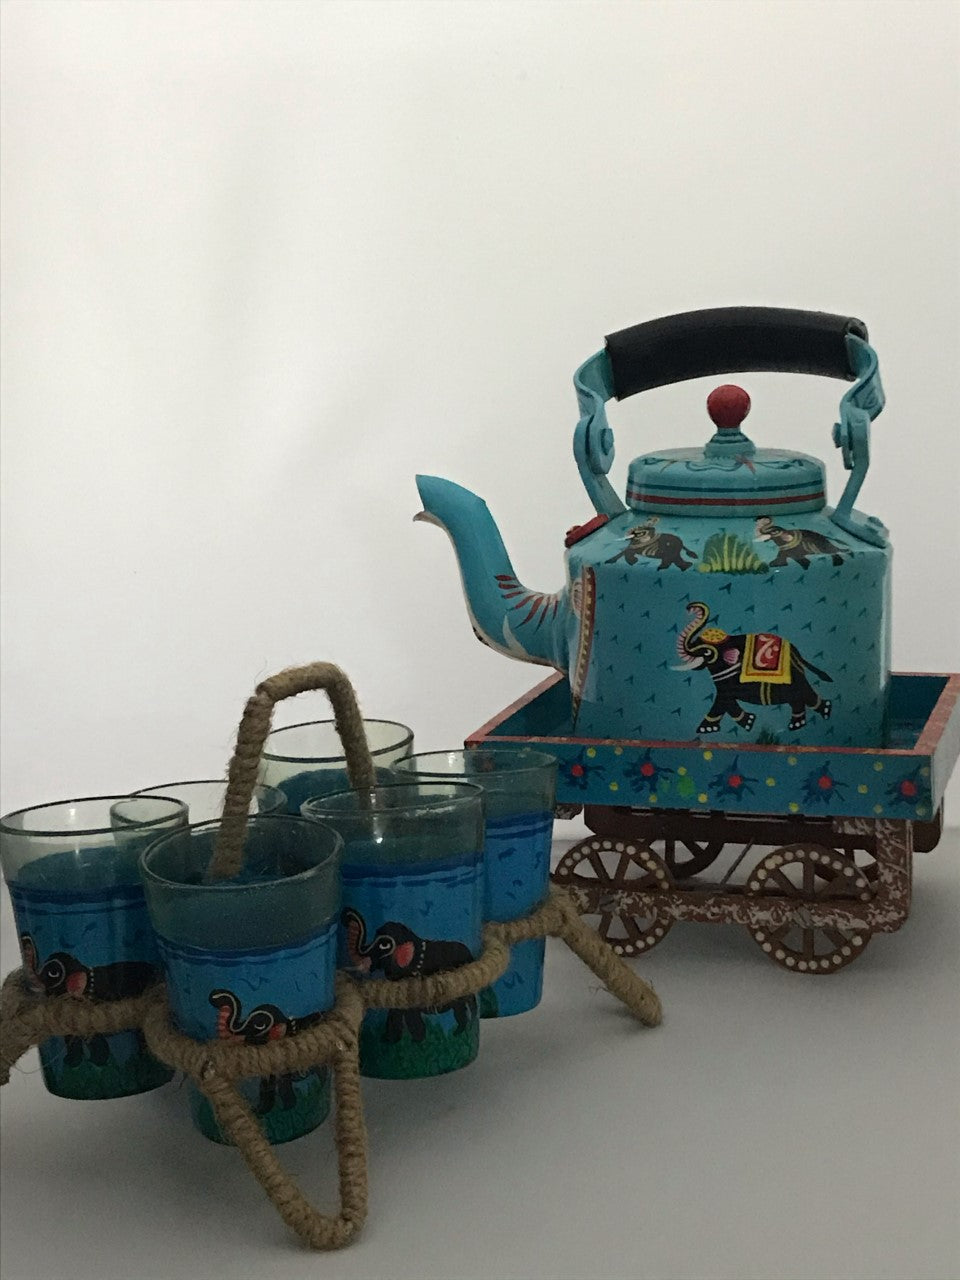 3 Piece Indian Tea Set - 6 Cups, 1 Teapot, 1 Rolling Stand